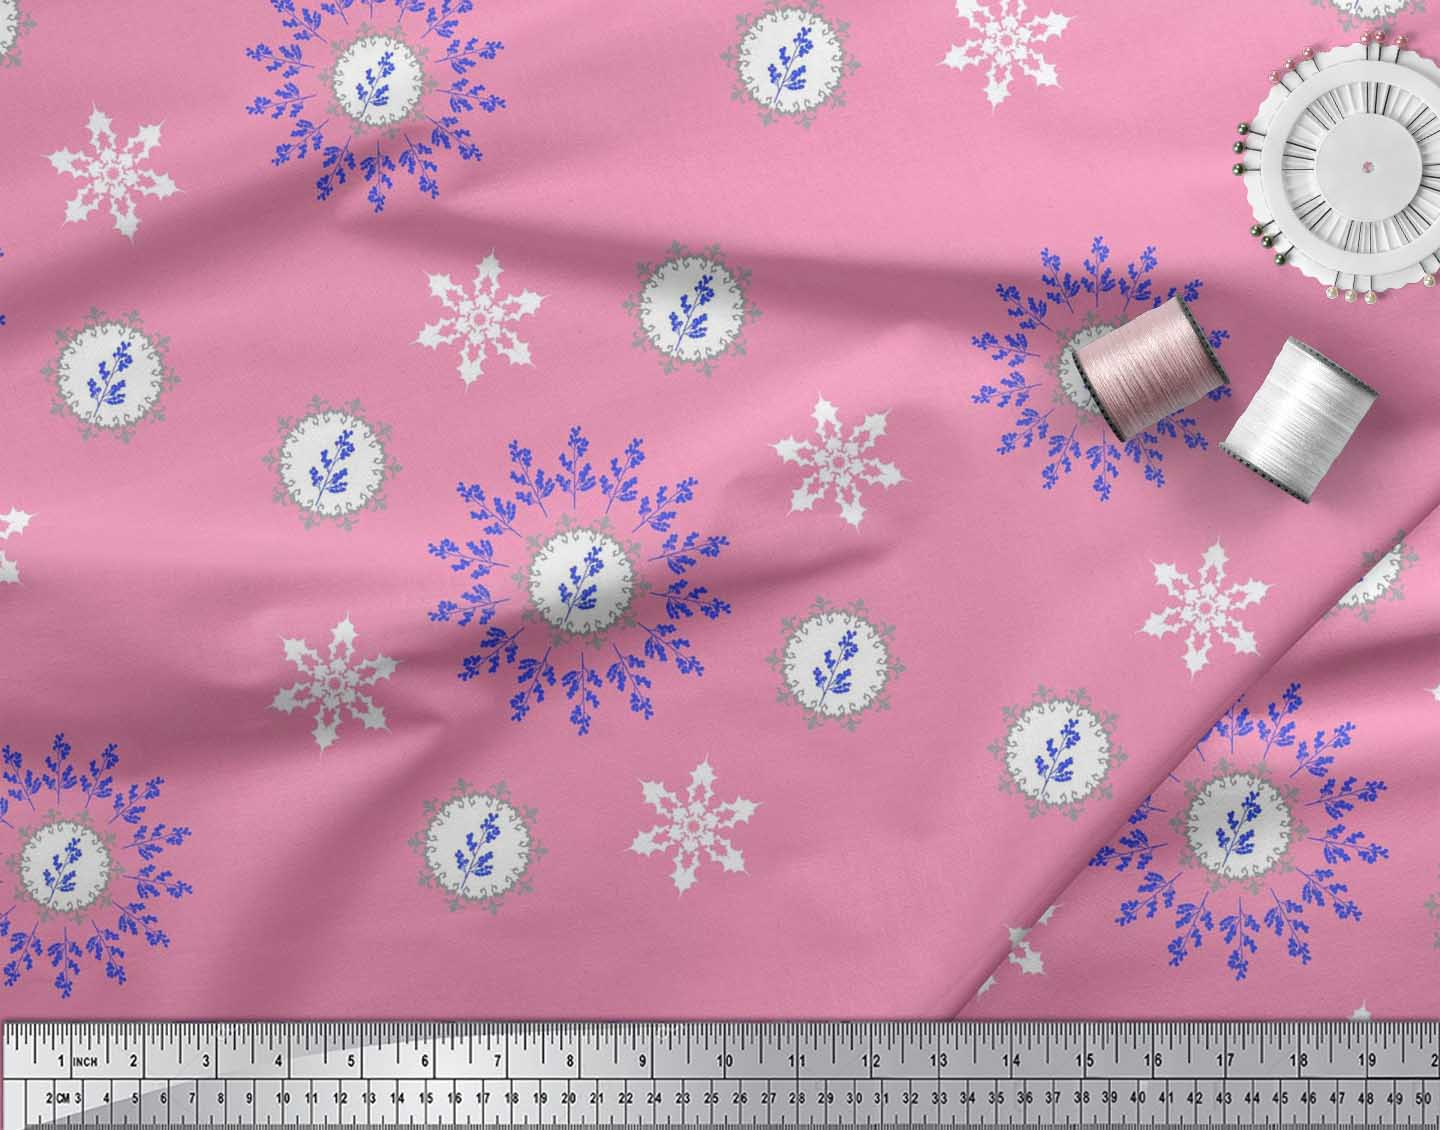 Soimoi-Fabric-Berries-amp-Damask-Decorative-Printed-Craft-Fabric-bty-DC-513A thumbnail 7